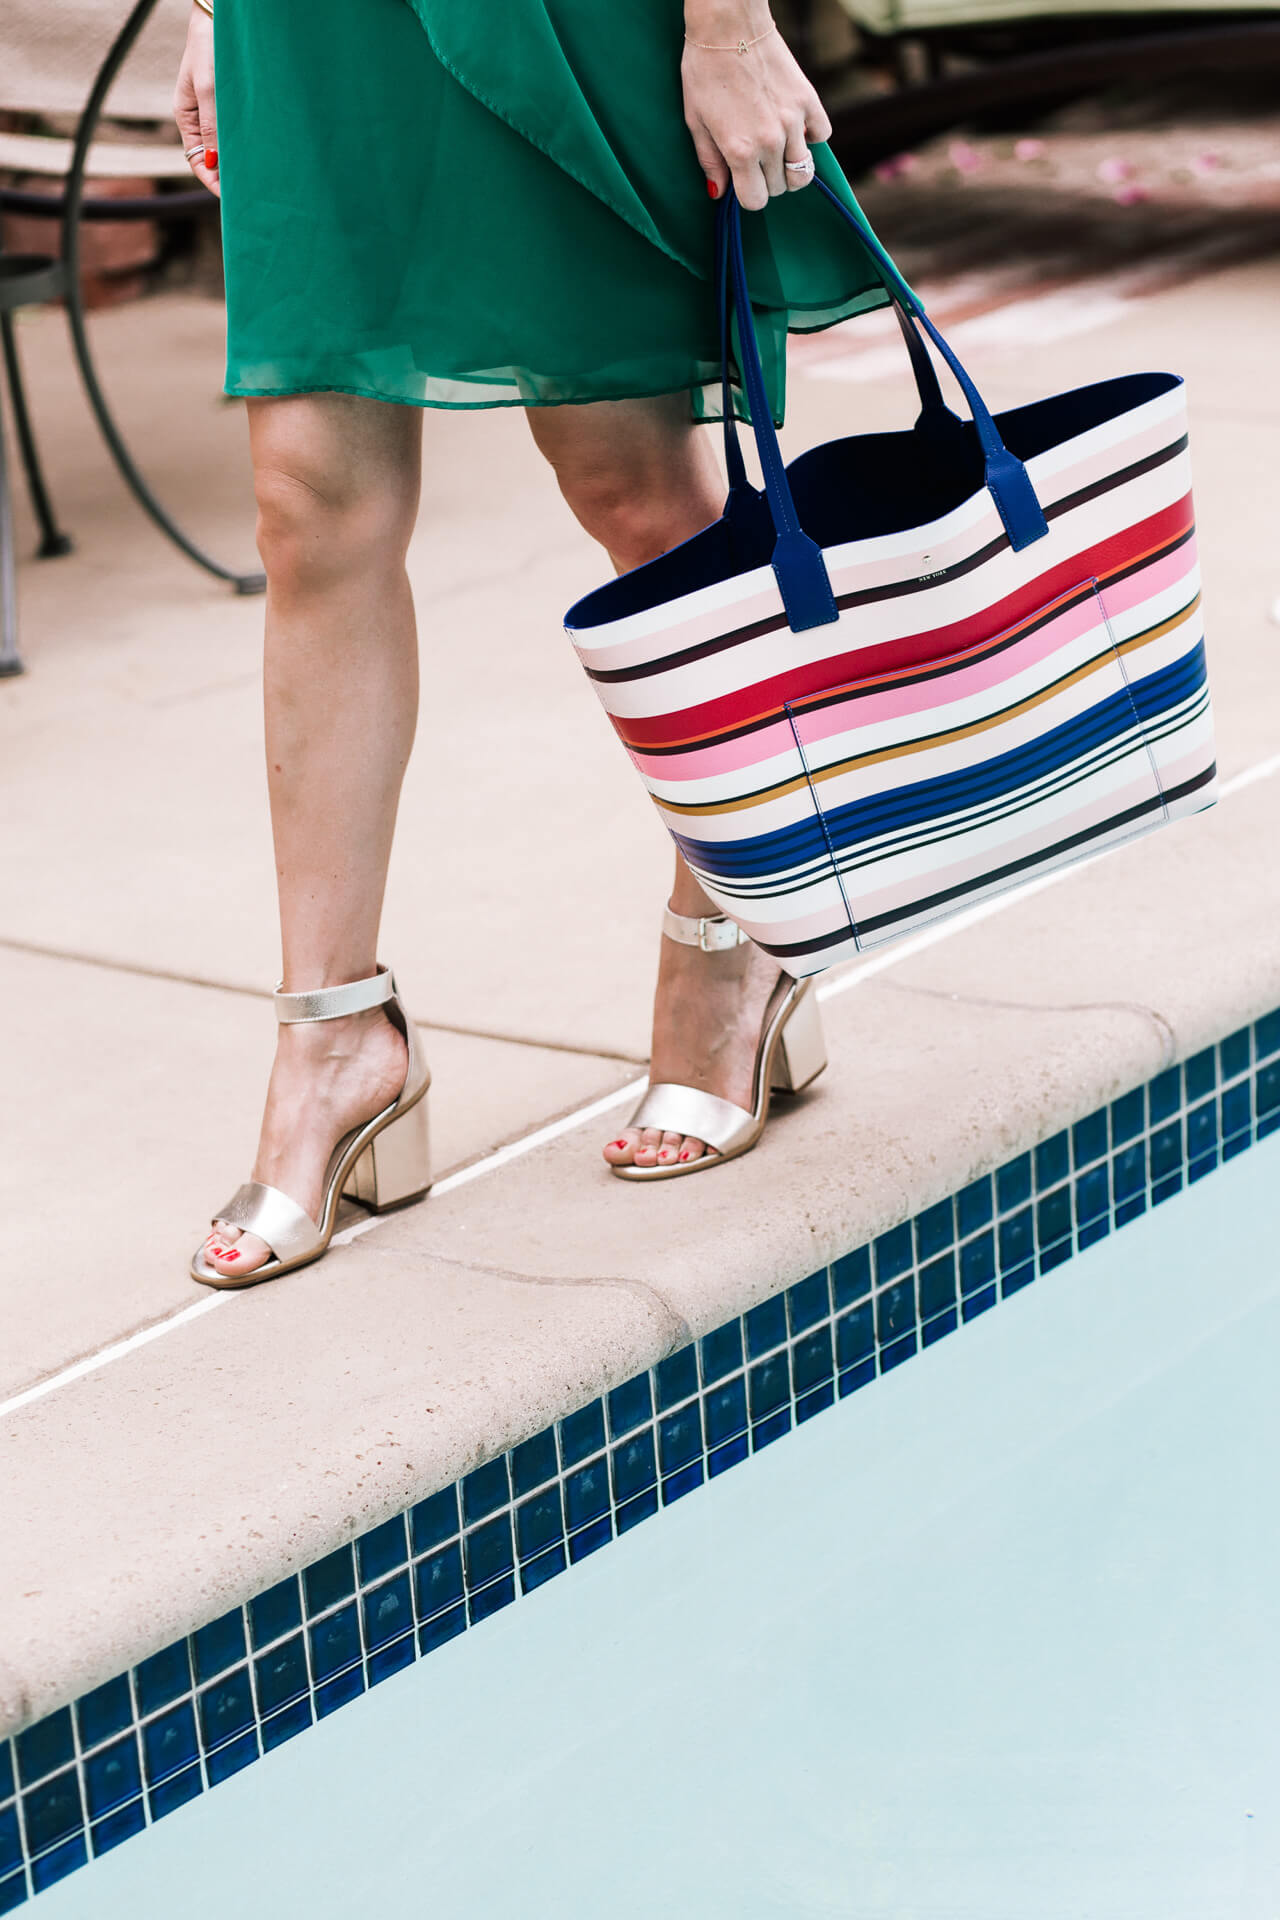 metallic shoes and striped bag pair perfectly